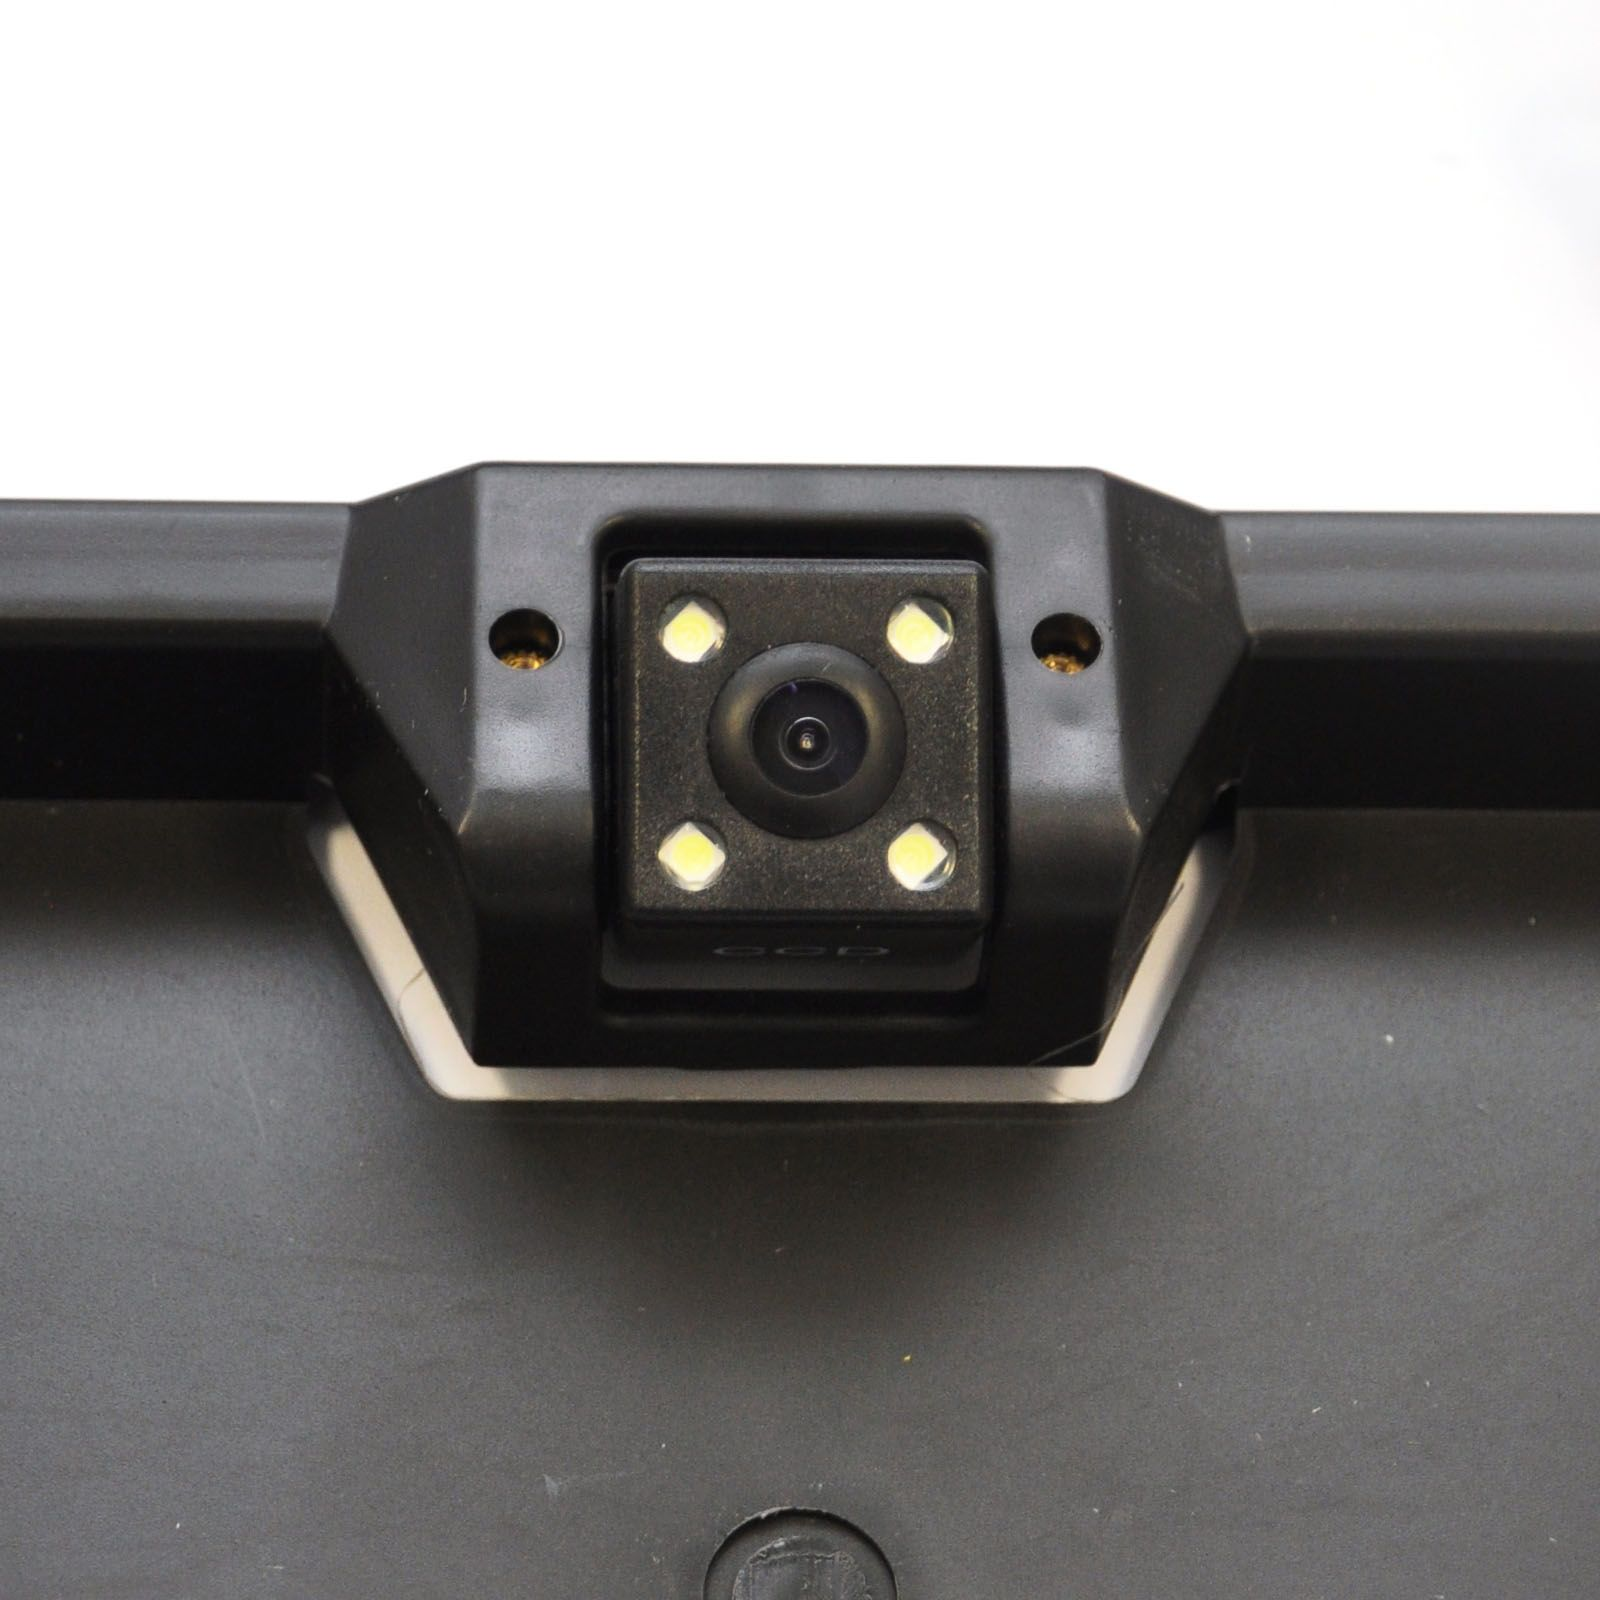 Number Plate Holder Frame Colour Camera LED Night Vision MA001  sc 1 st  We specialise in HID Xenon Conversion Kits Xenon HID Bulbs Parking ... & Plate Holder Frame Colour Camera LED Night Vision MA001